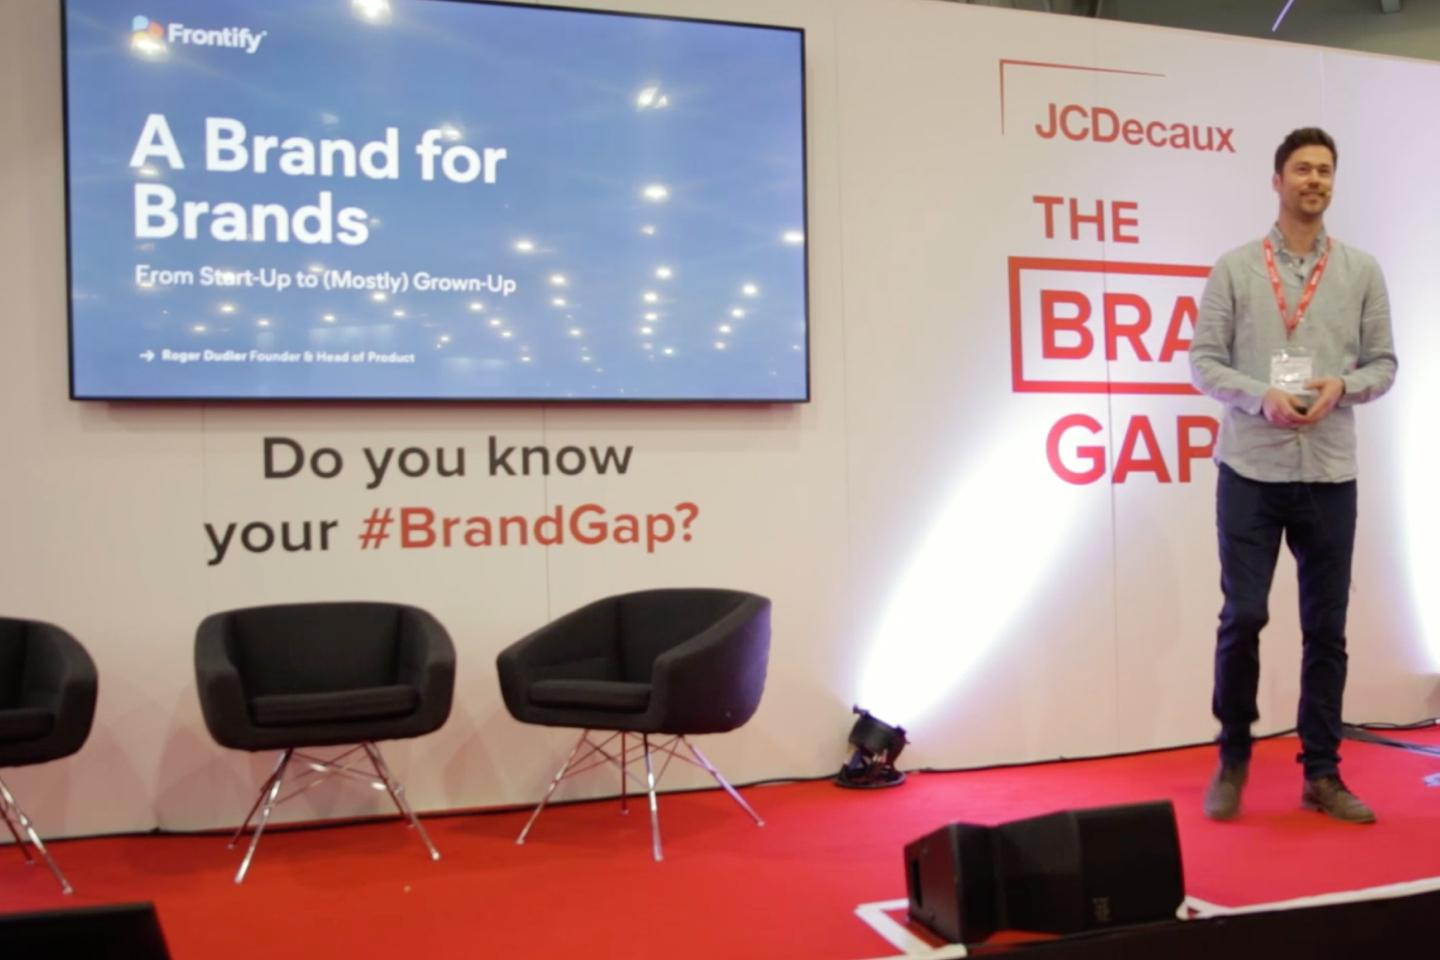 How to Take a Brand From Start-Up to Grown-Up